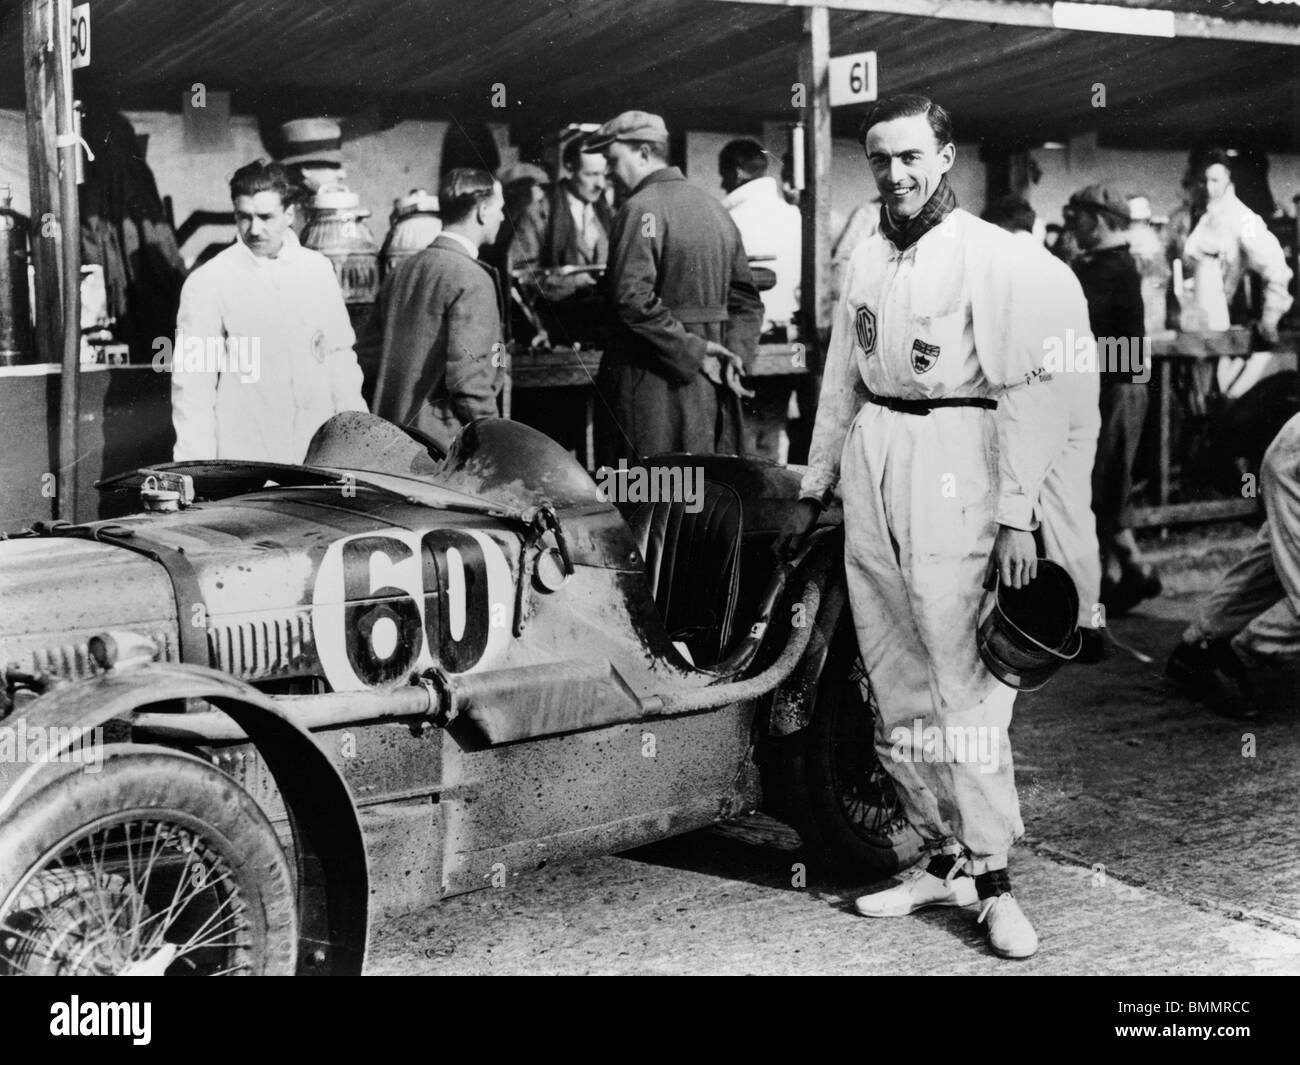 MG C type Midget with the Earl of March 1931 - Stock Image